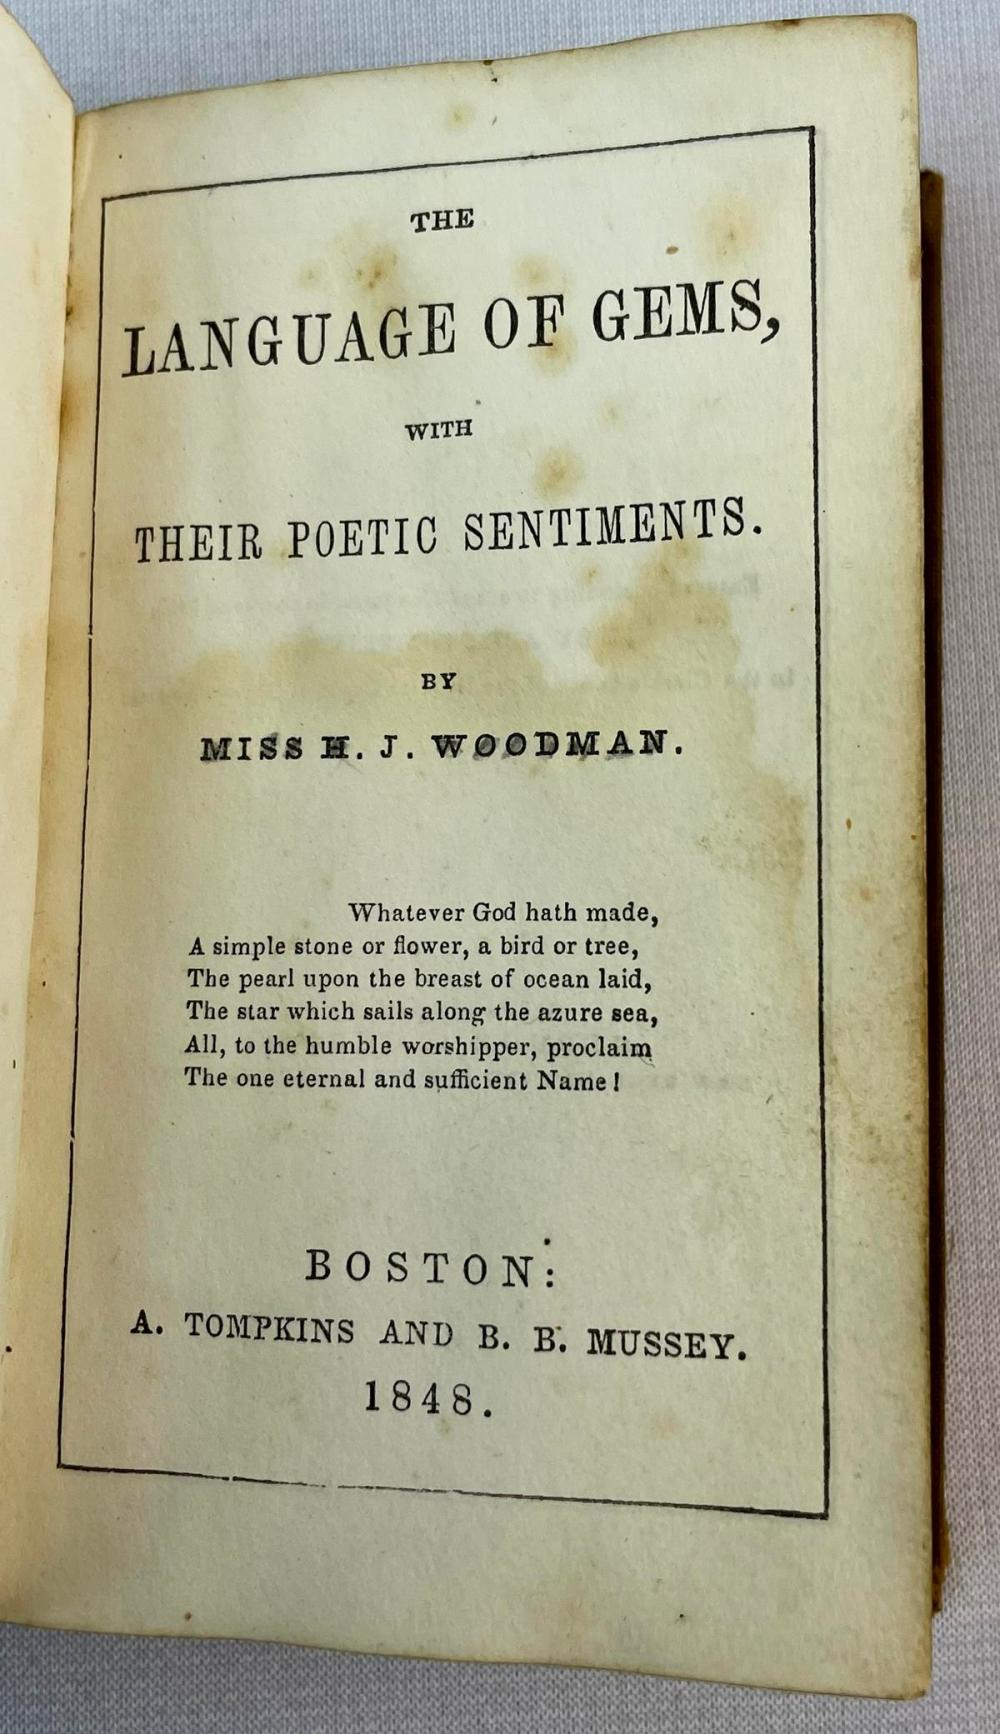 1848 The Language of Gems With Their Poetic Sentiments by Miss H.J. Woodman ILLUSTRATED